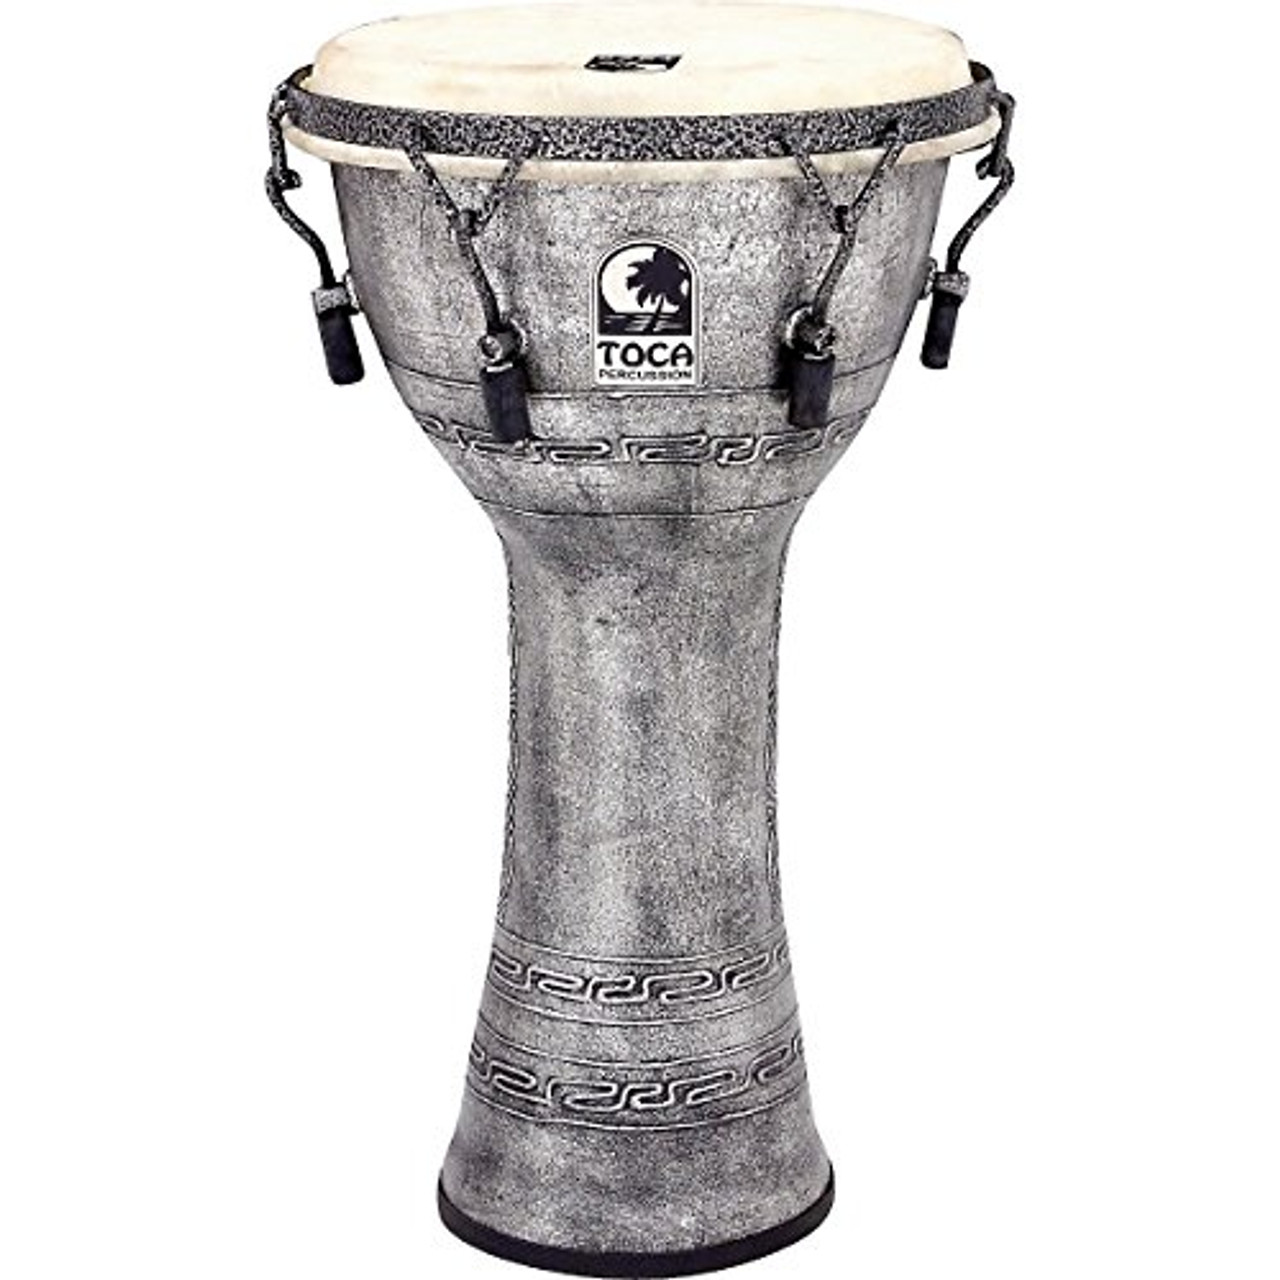 Toca a Freestyle Antique-Finish Djembe (10 inch Silver)